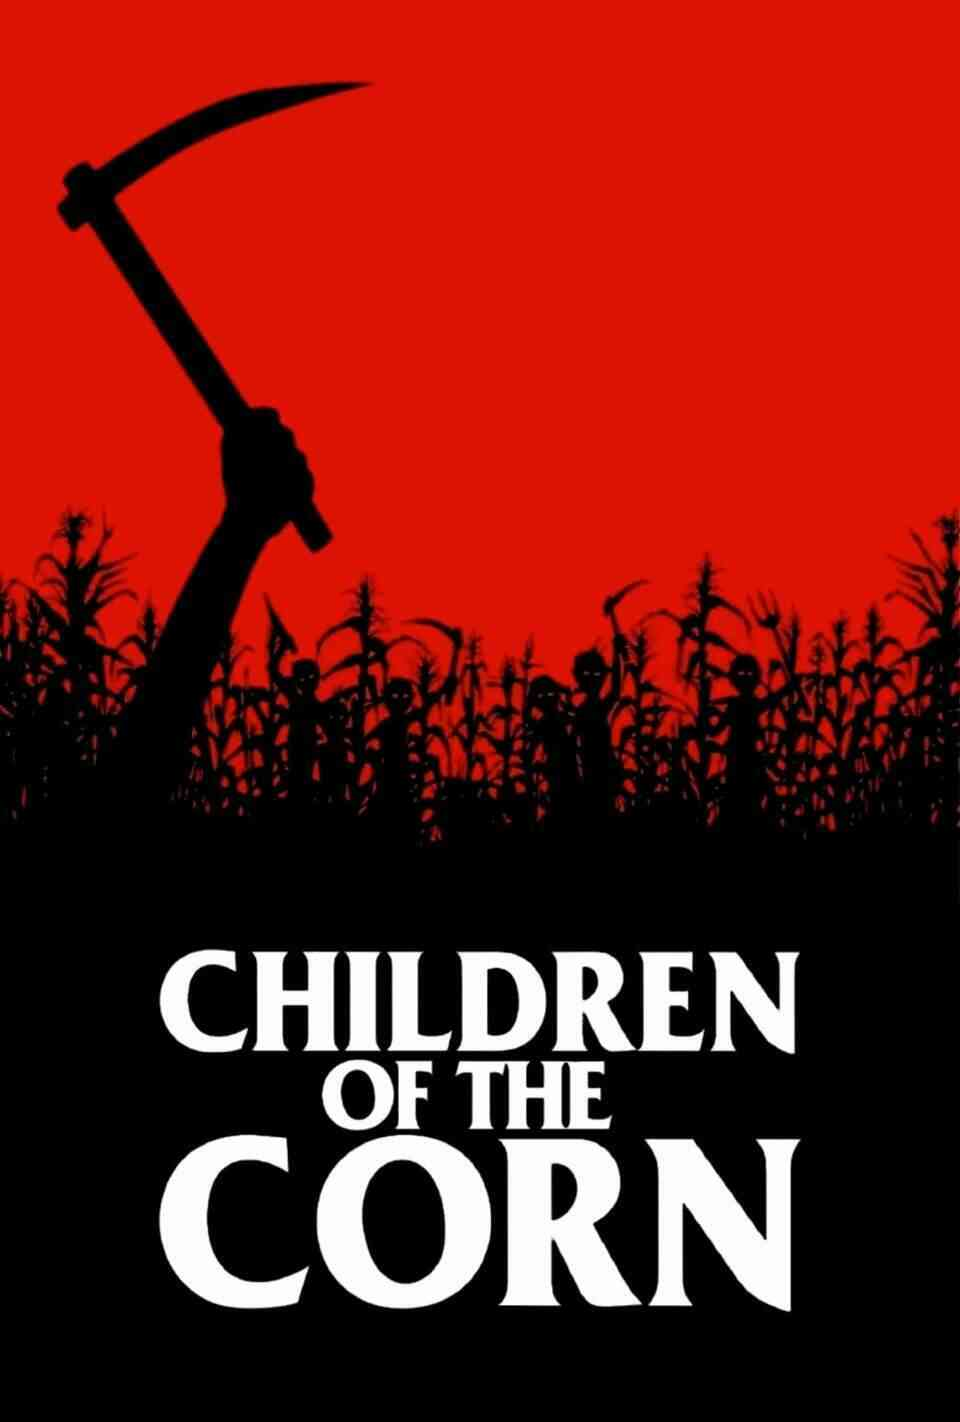 The Children of the Corn Poster